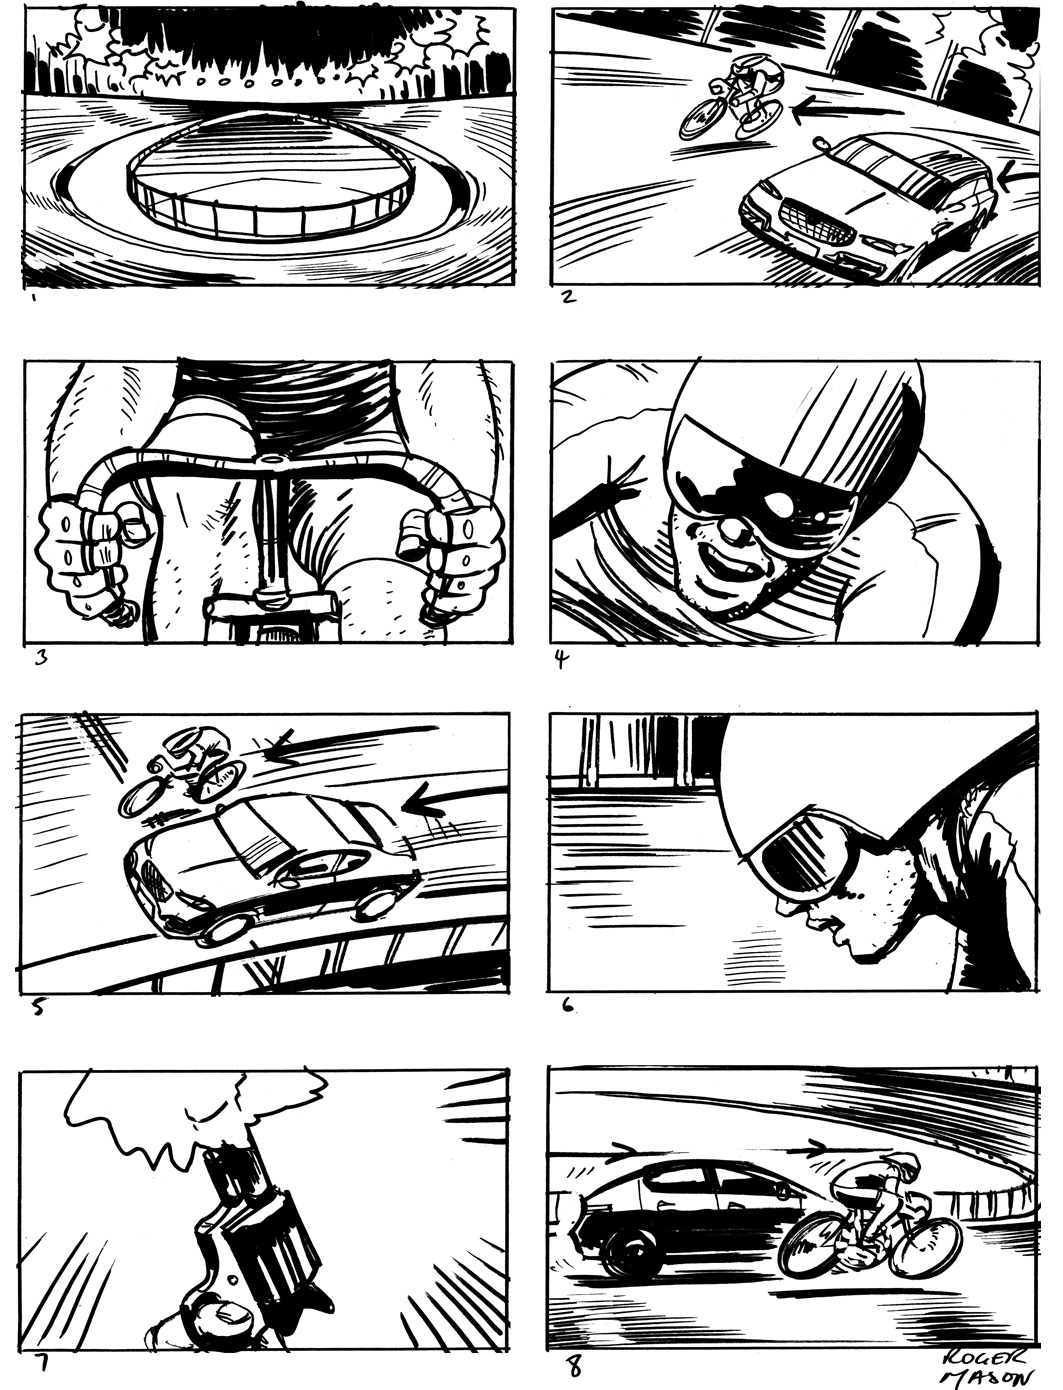 squire_jaguar cars storyboard_storyboard artist london_black and white illustration_roger mason_race track